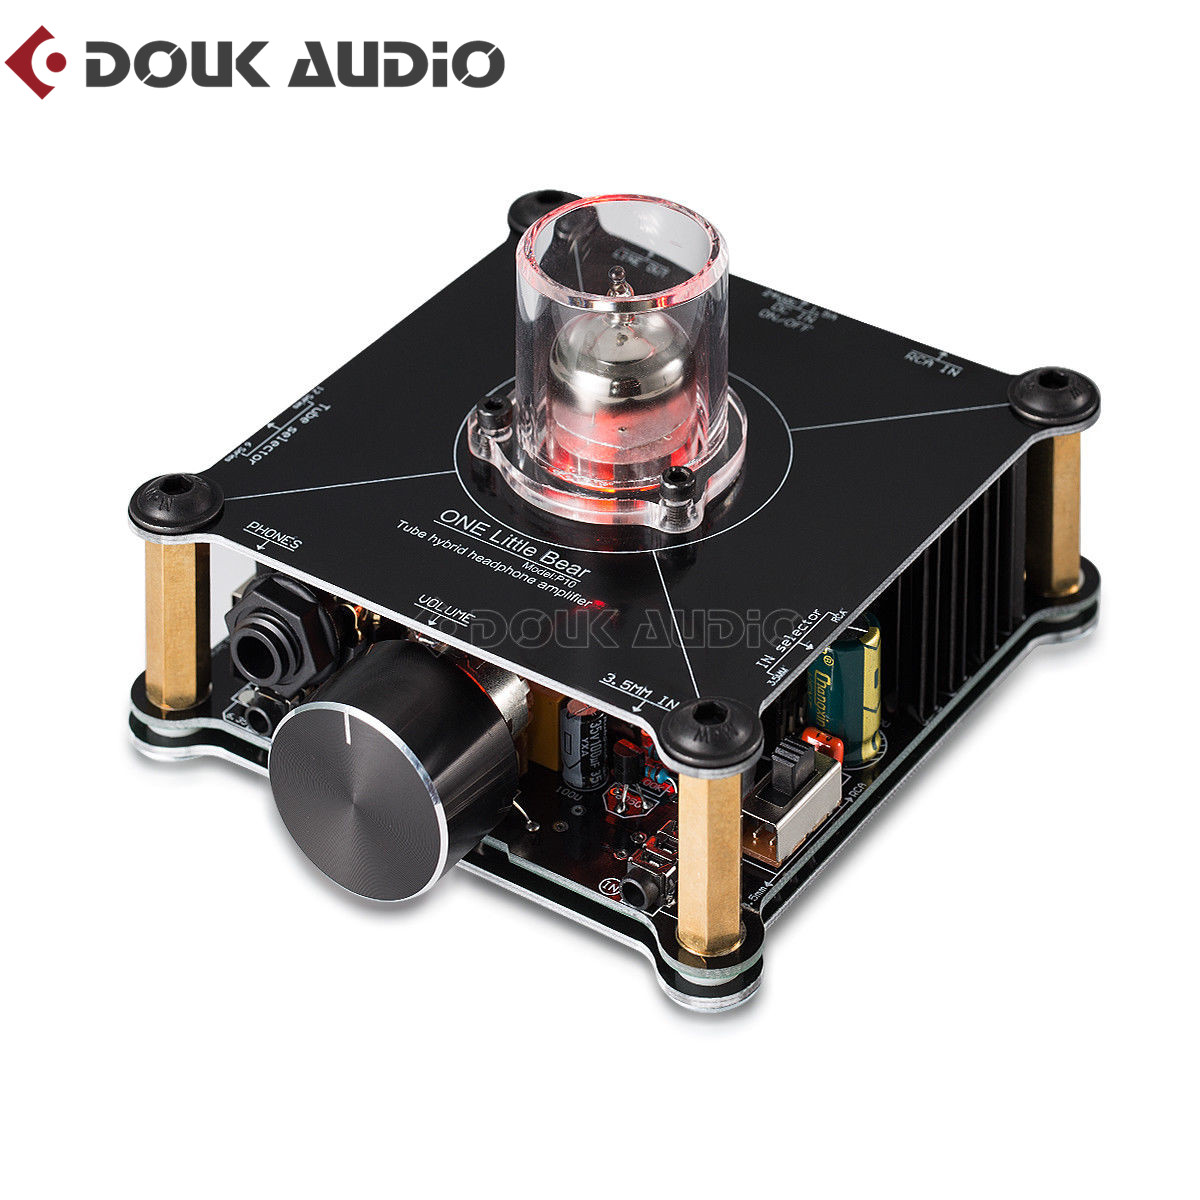 Douk audio Hi-Fi Mini Class A 12AU7 Tube Multi-Hybrid Headphone Amplifier Stereo Pre-Amp Little Bear P10 Home Amp